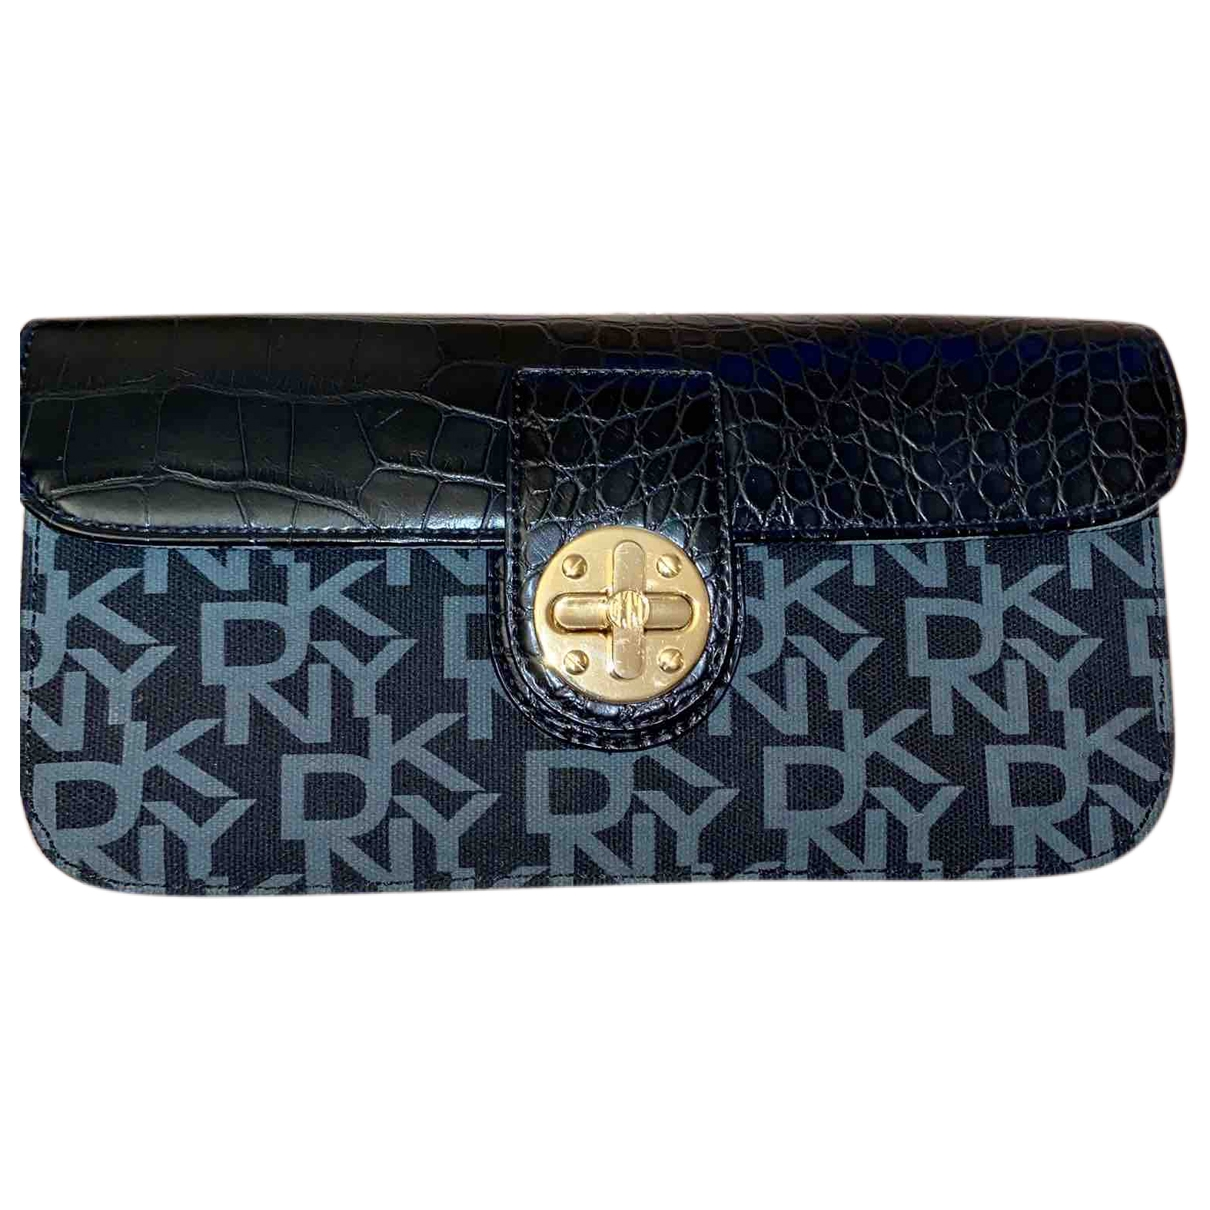 Dkny \N Black Cloth Clutch bag for Women \N